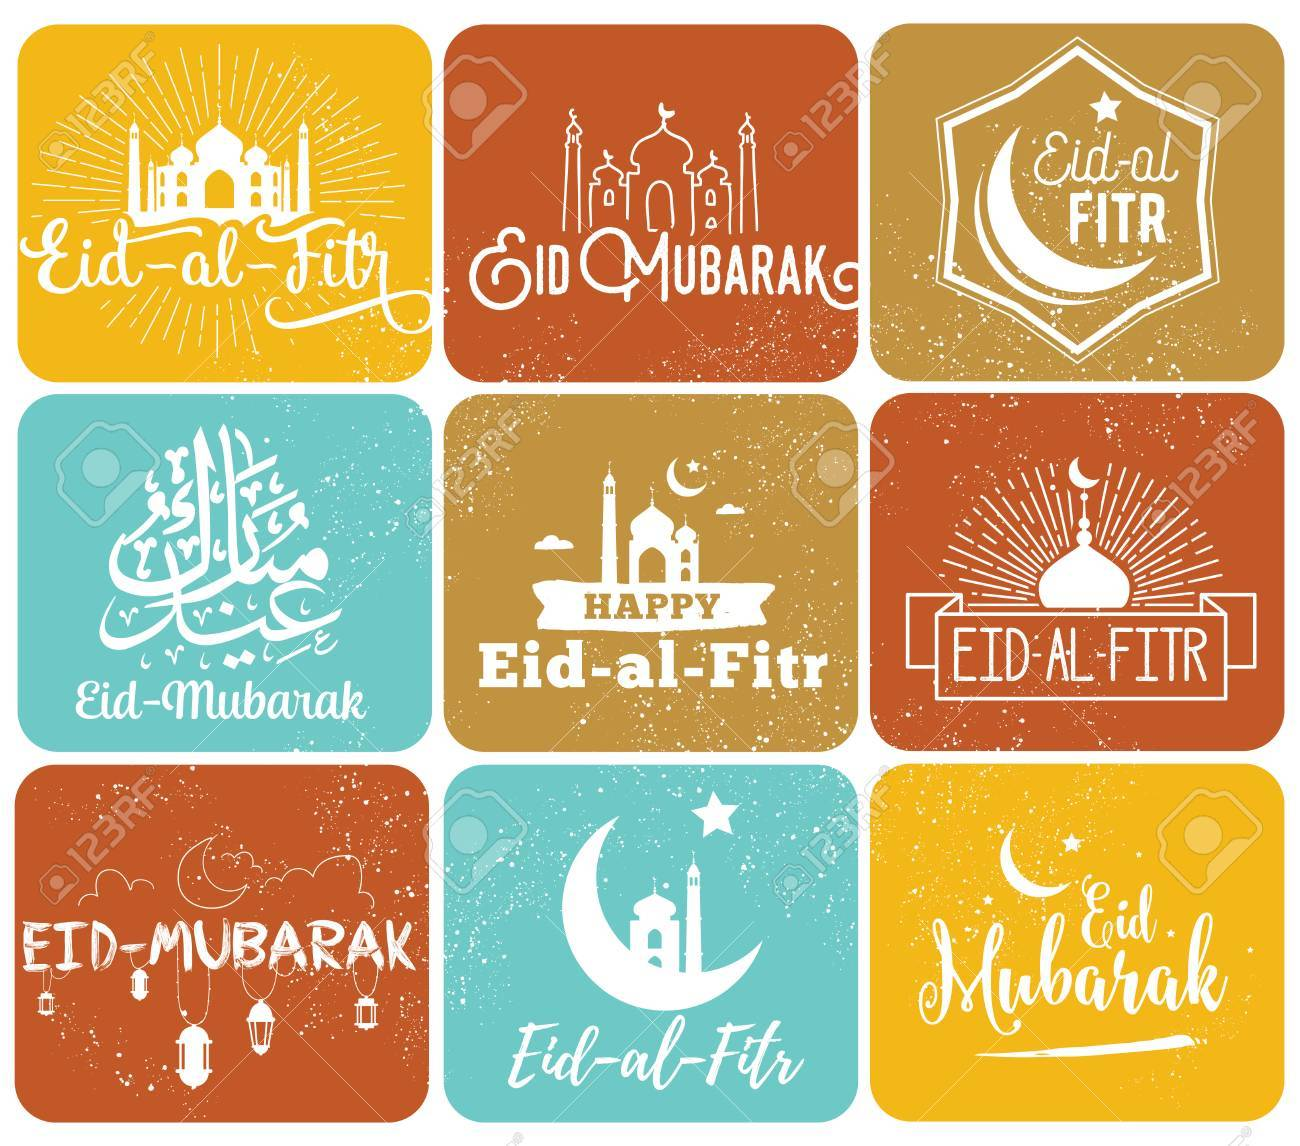 Top Eid Holiday Eid Al-Fitr Greeting - 57490457-illustration-of-eid-al-fitr-muslim-traditional-holiday-typographical-design-usable-as-background-or-  Collection_548349 .jpg